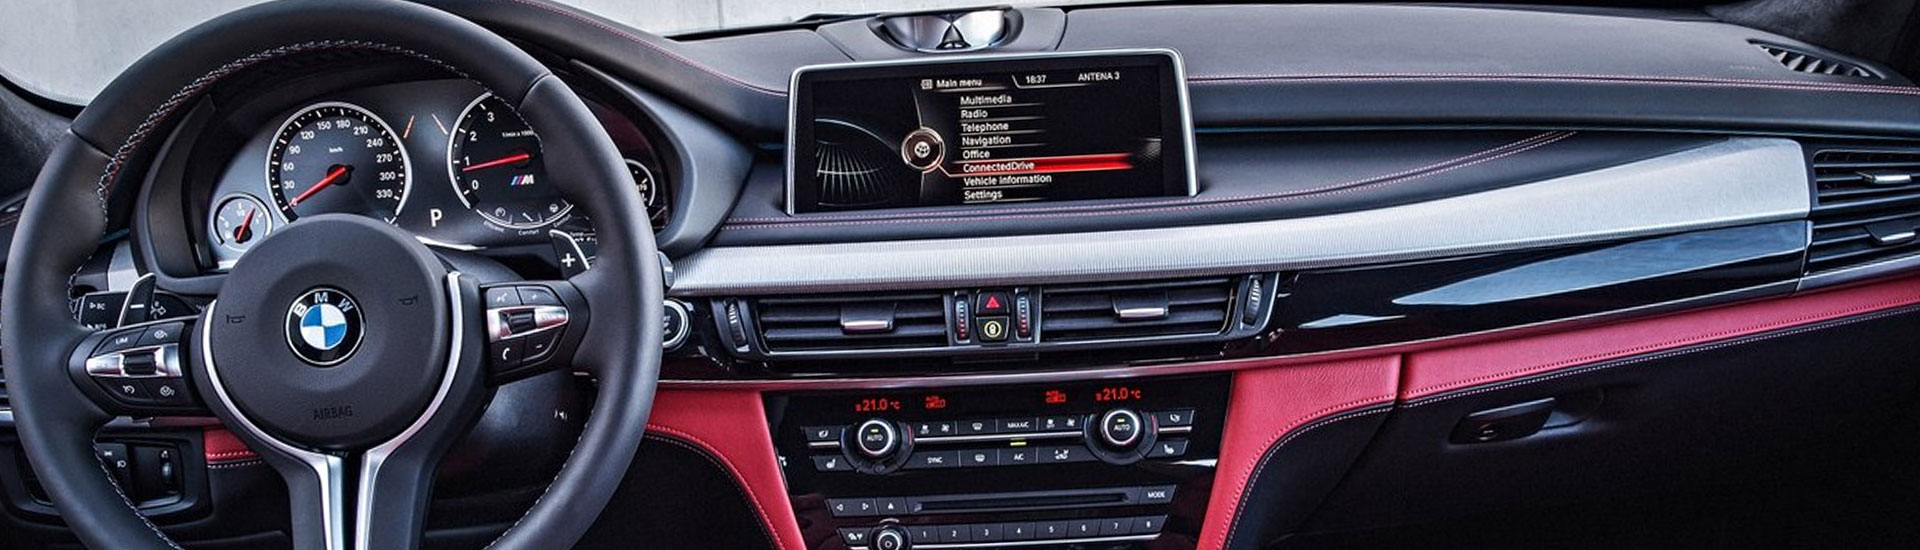 BMW X5 Custom Dash Kits